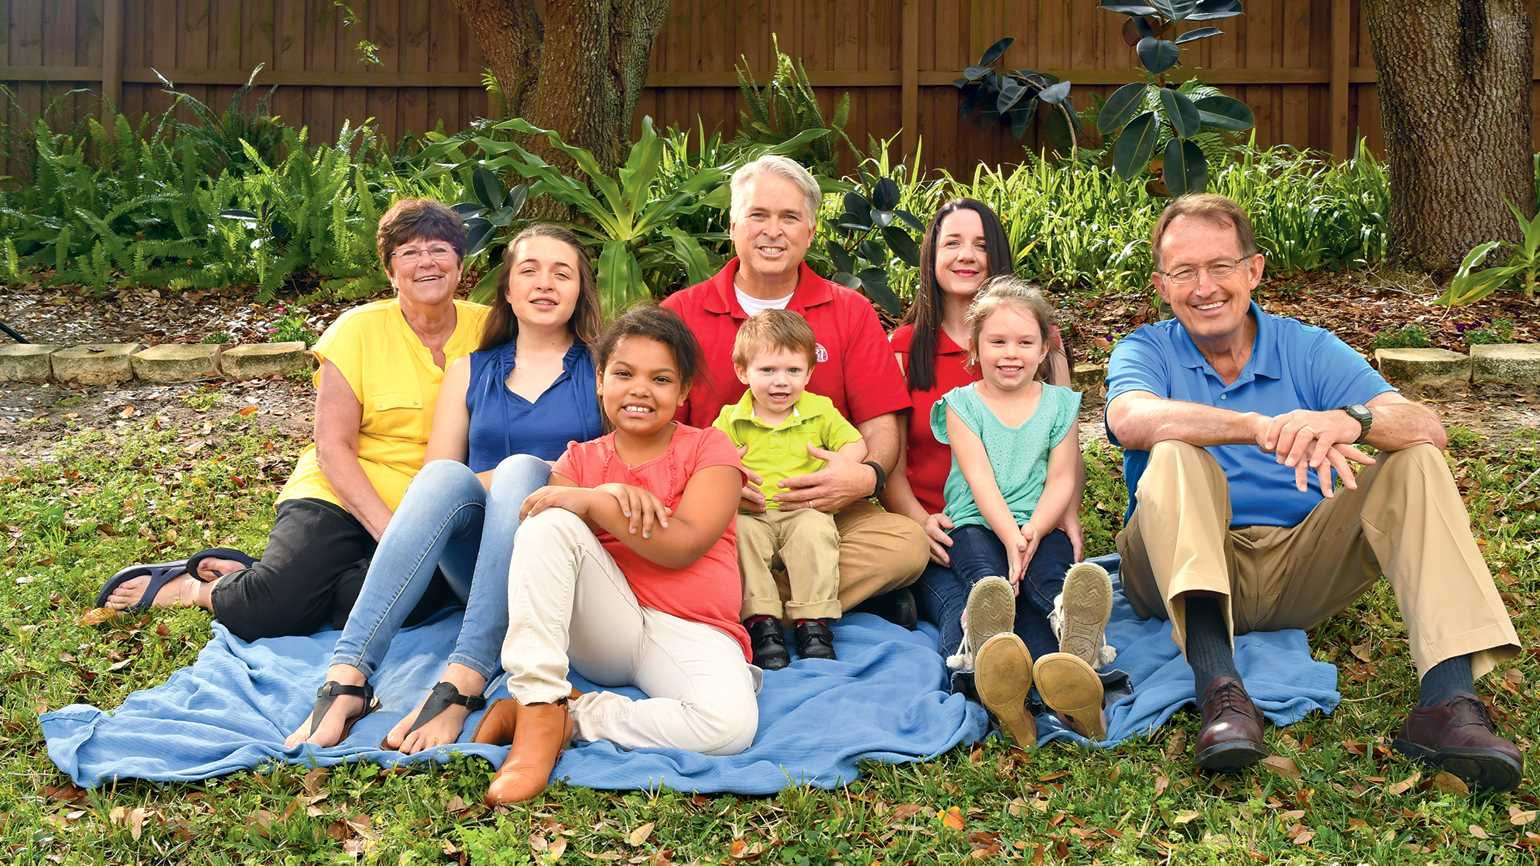 With parents in the back row, grandparents on either end, the Burklew kids take center stage.